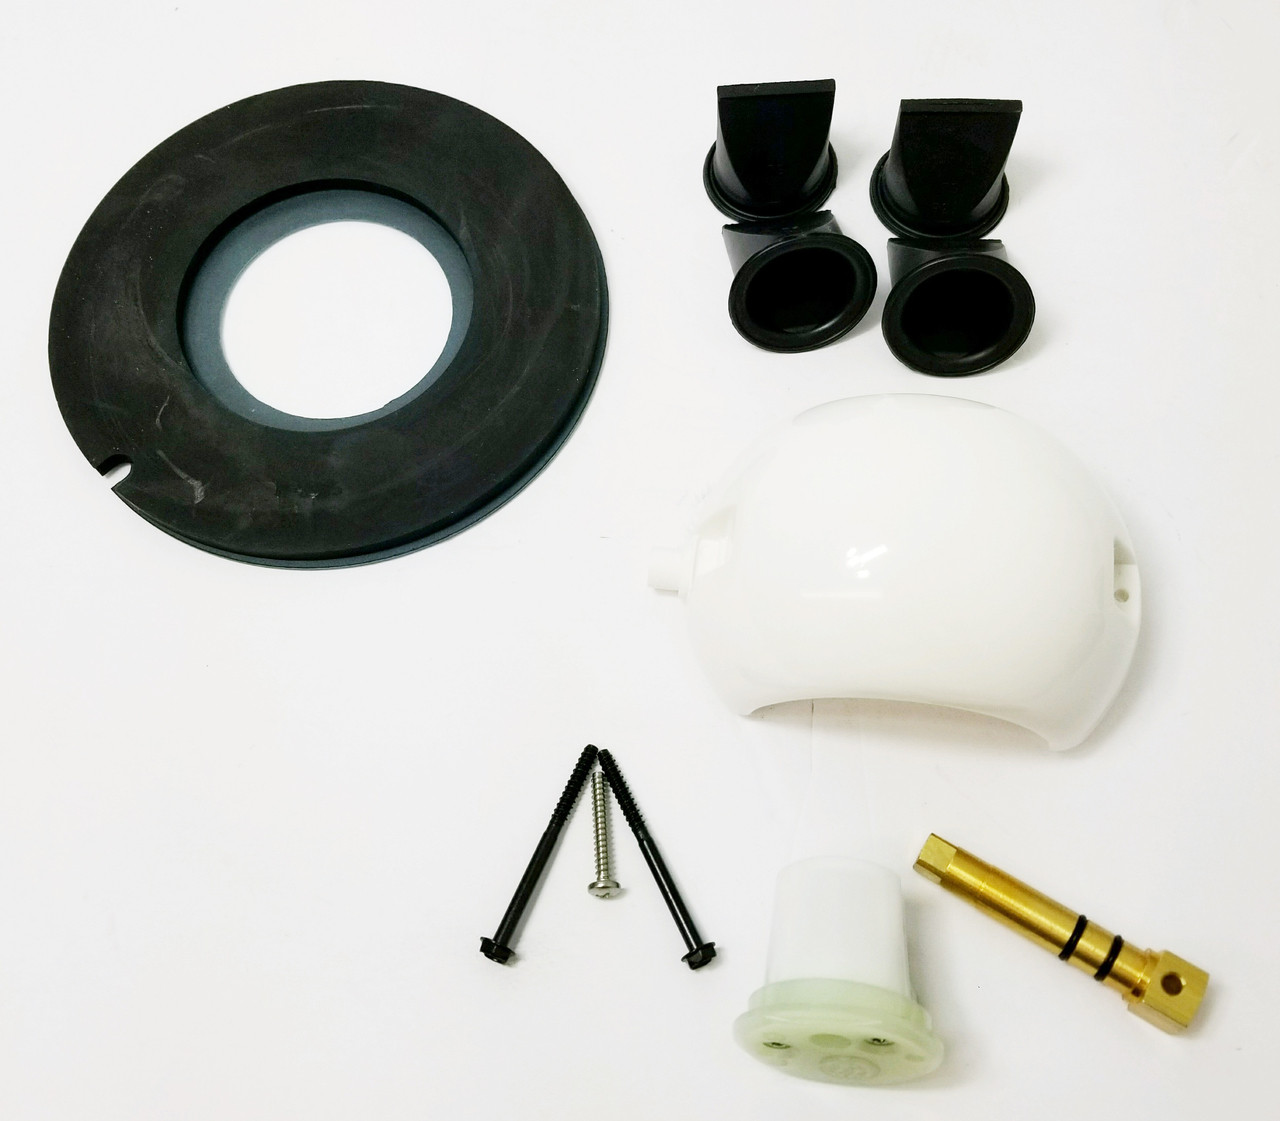 "Kit contains 1- bowl seal # 385311462 1- ball, shaft and cartridge #385318162 4- 1 1/2"" duck bill valves #600347802"